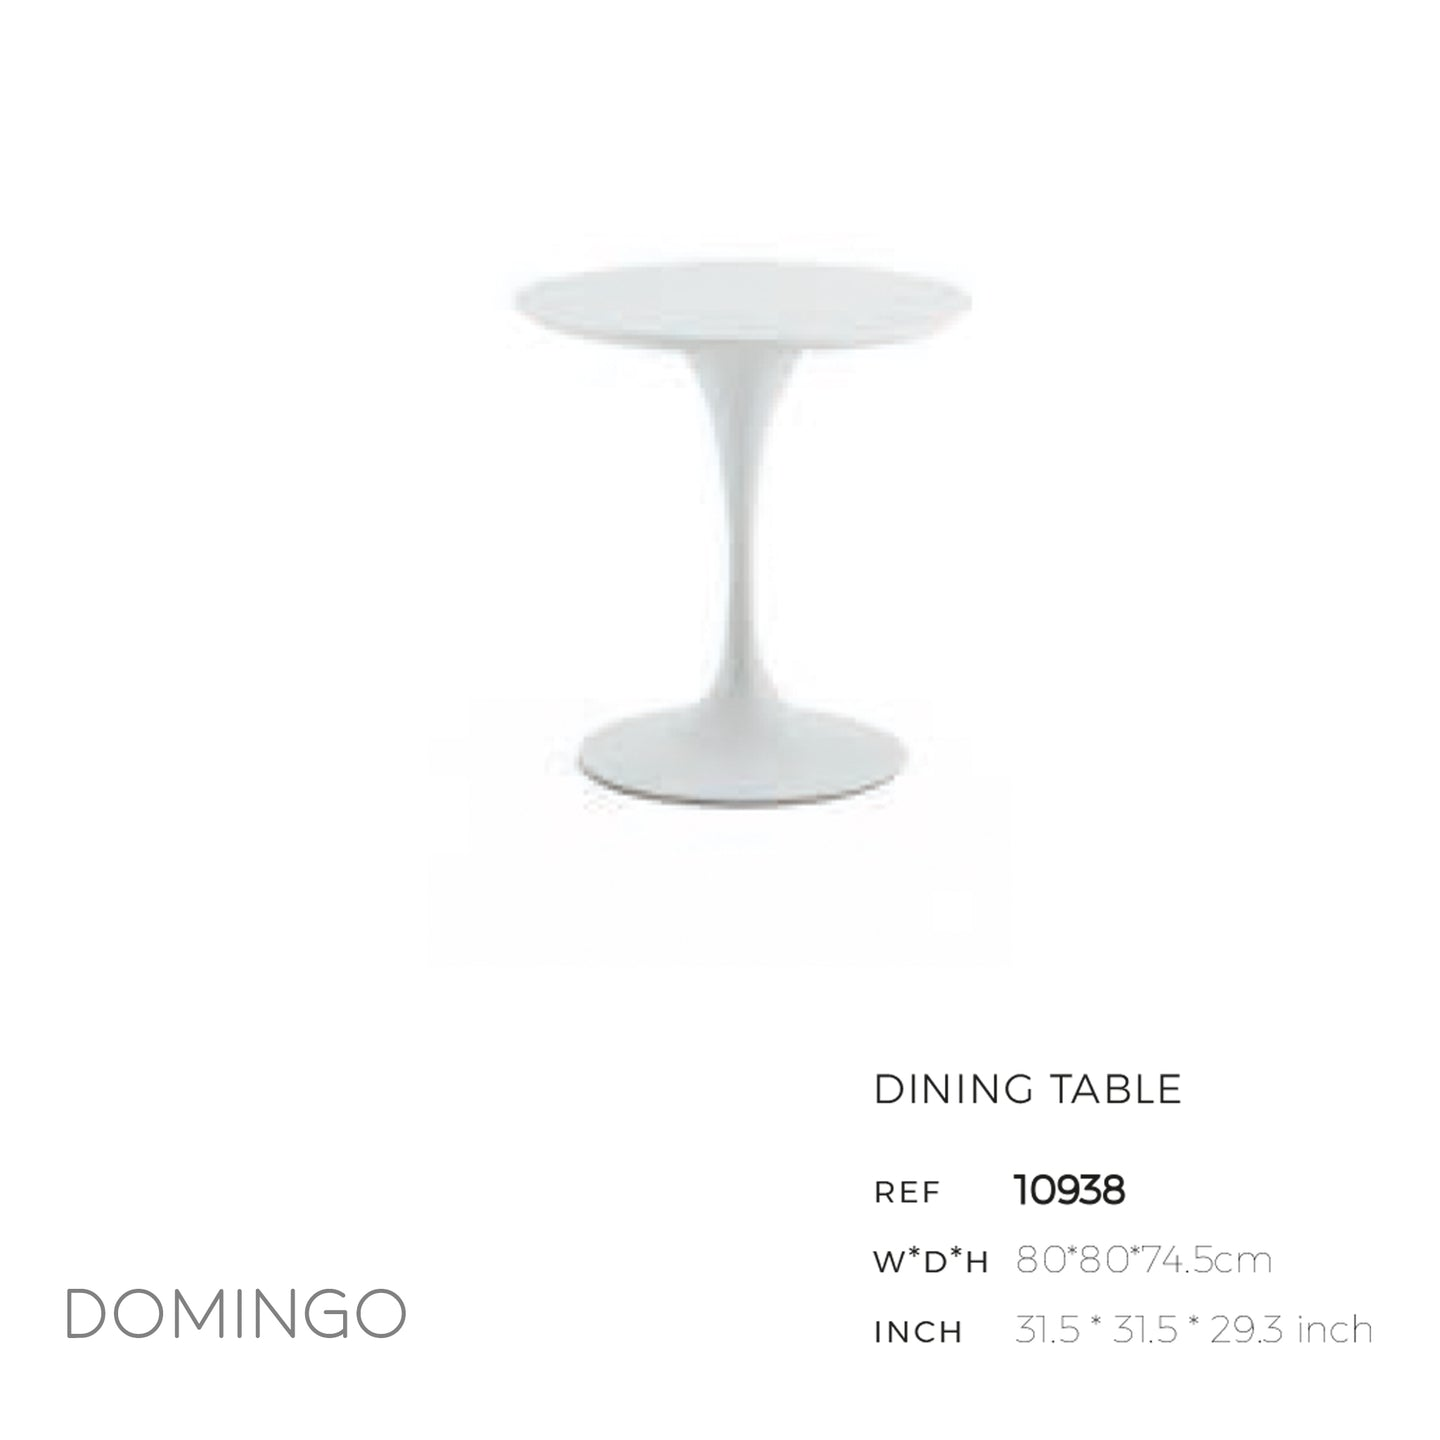 Domingo Round Dining Table